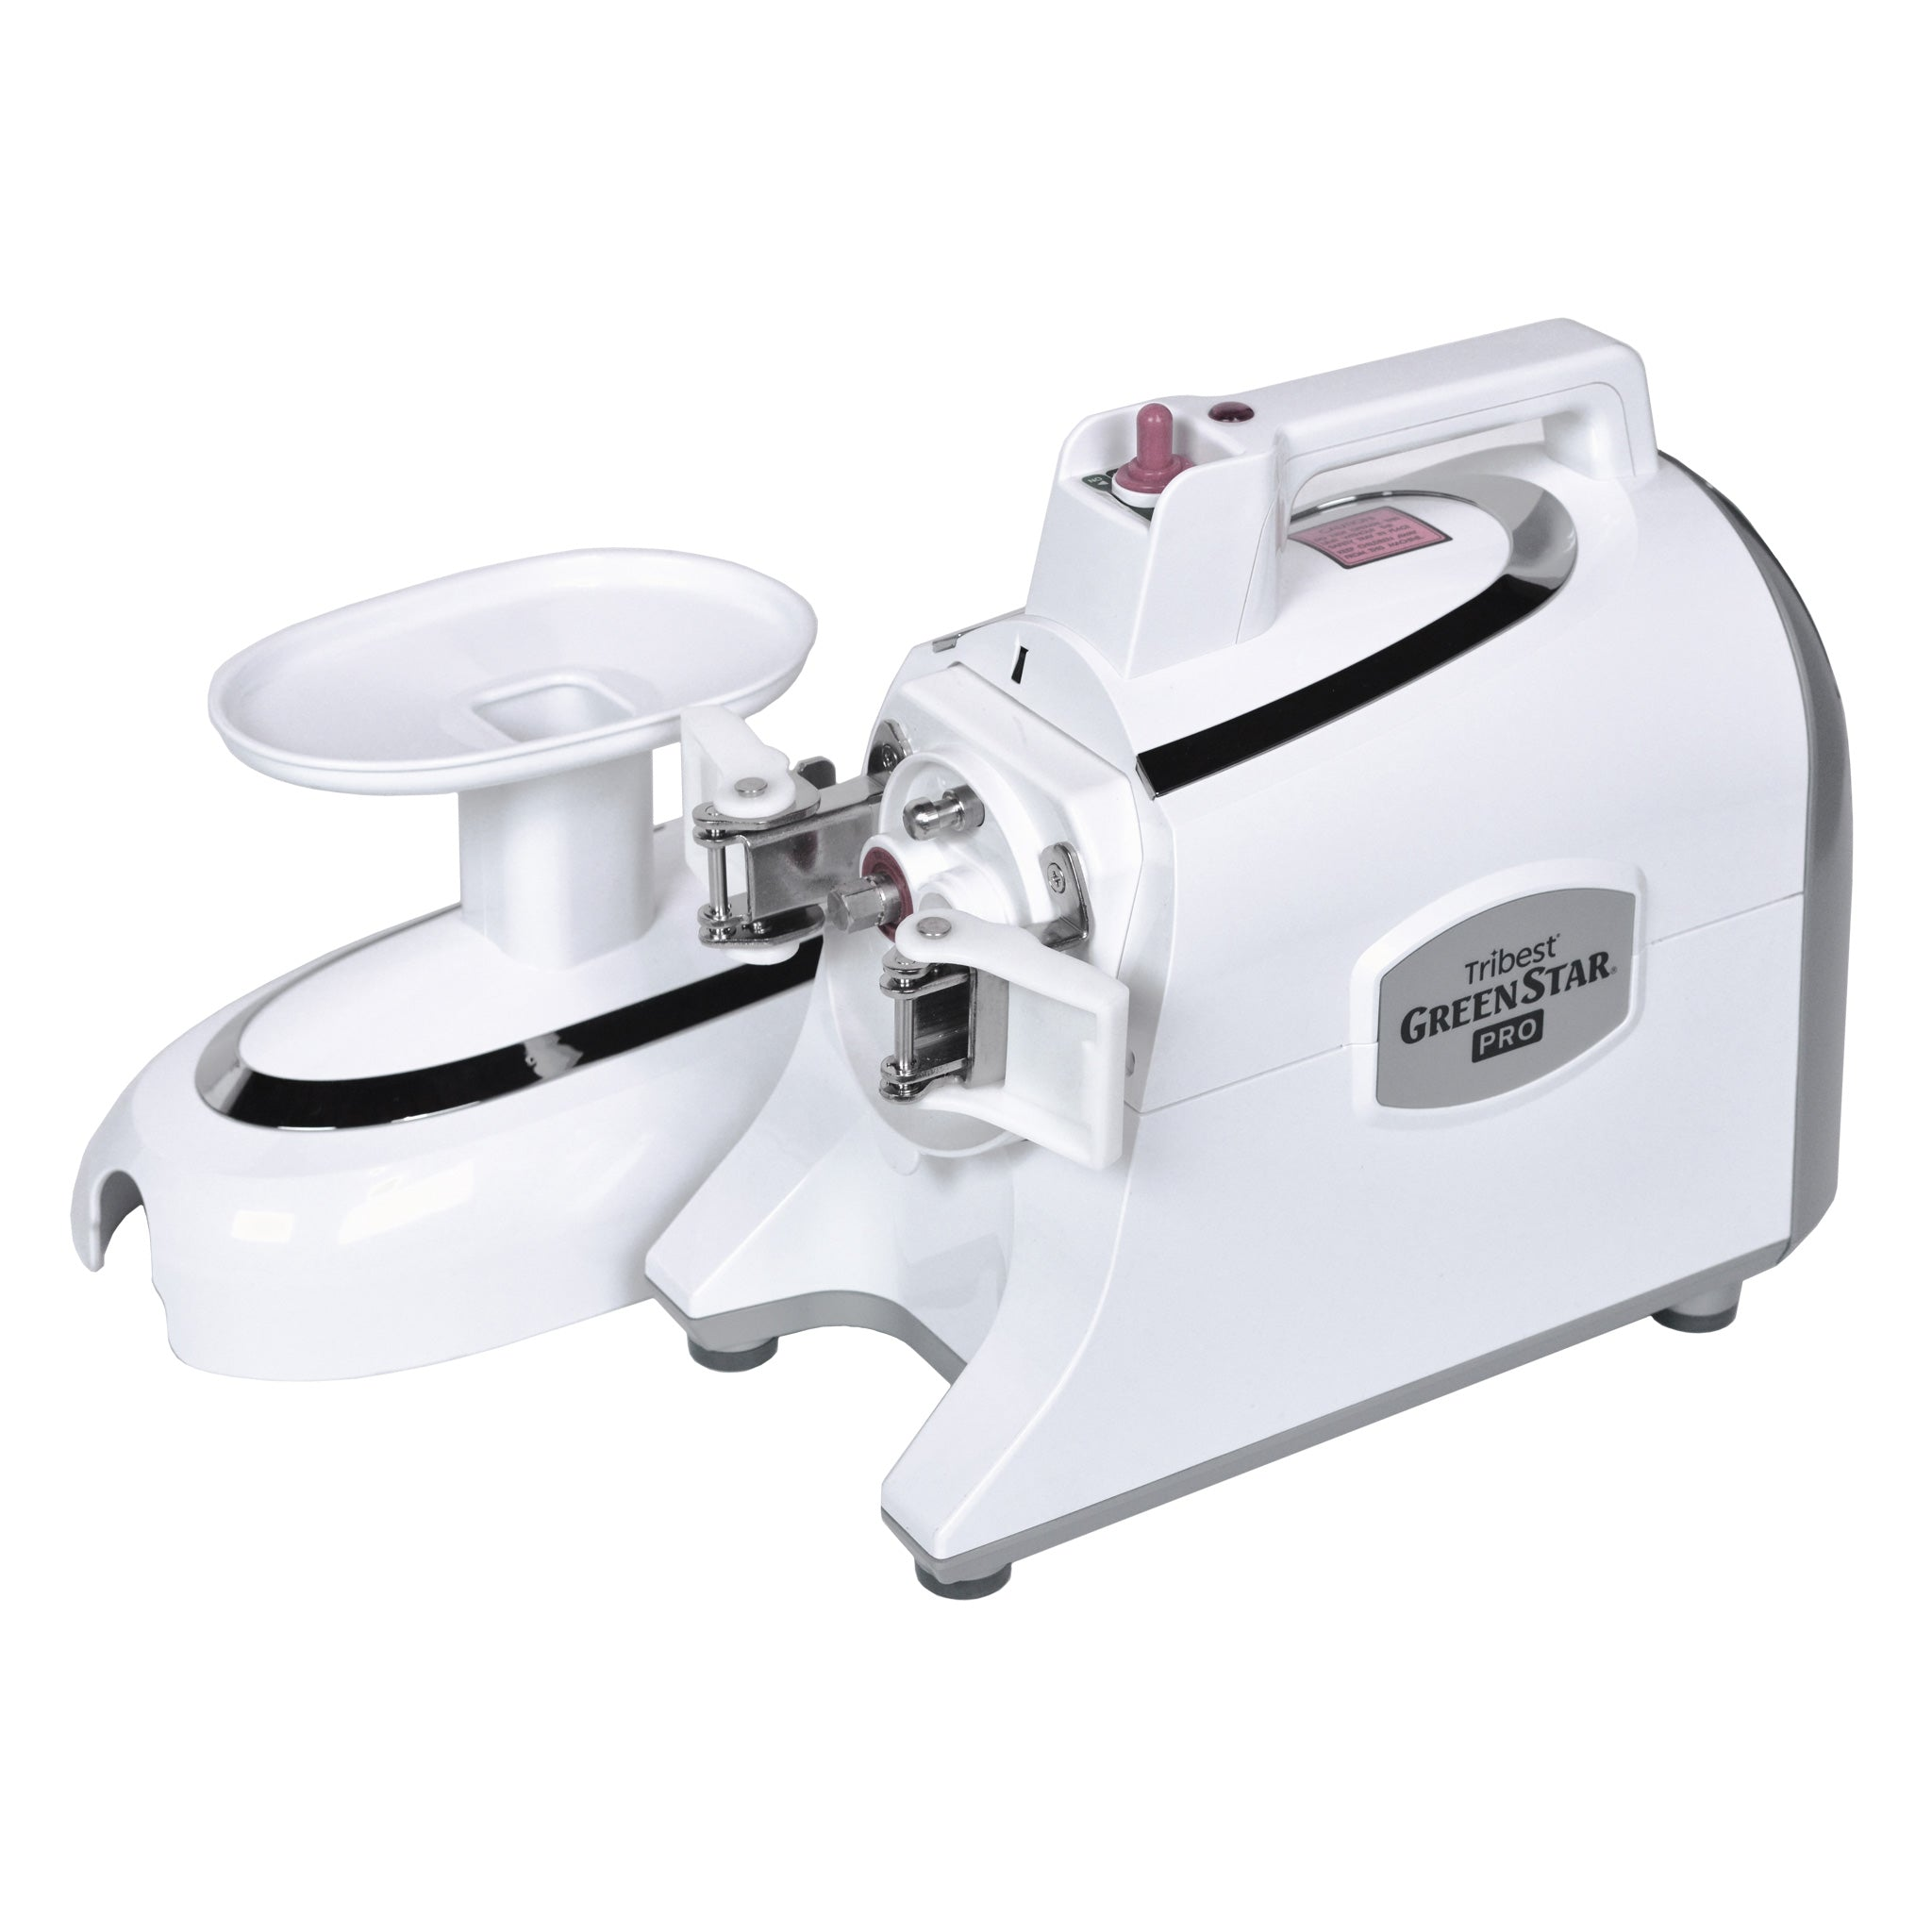 Greenstar® Pro Twin Gear Commercial Slow Juicer in White GS-P501-B - Hood Off - Tribest